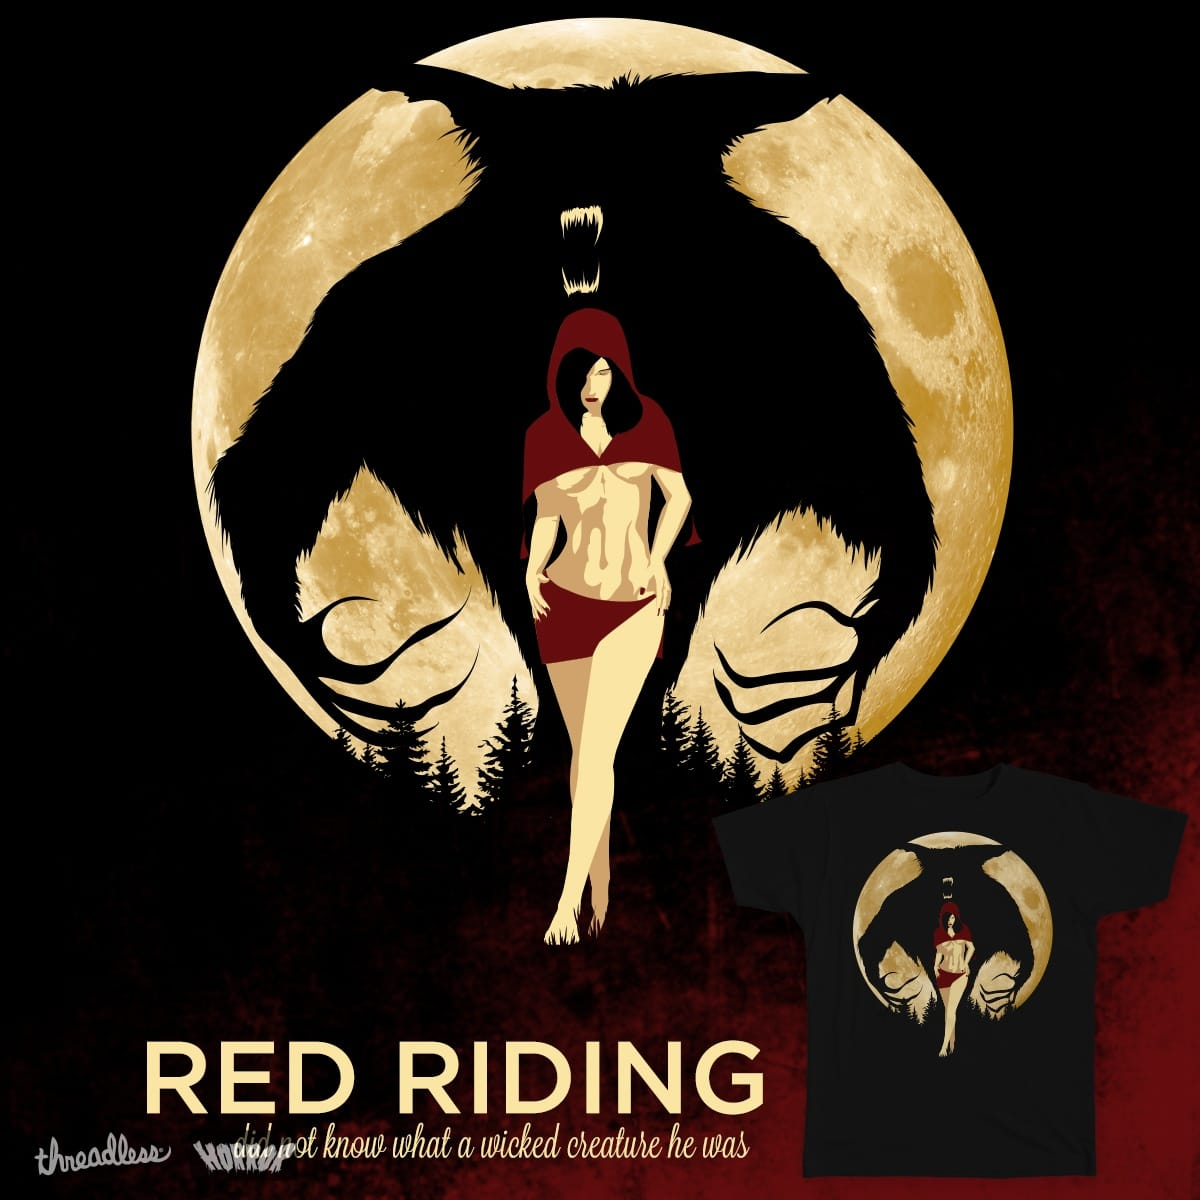 Red Riding by King_Friday on Threadless